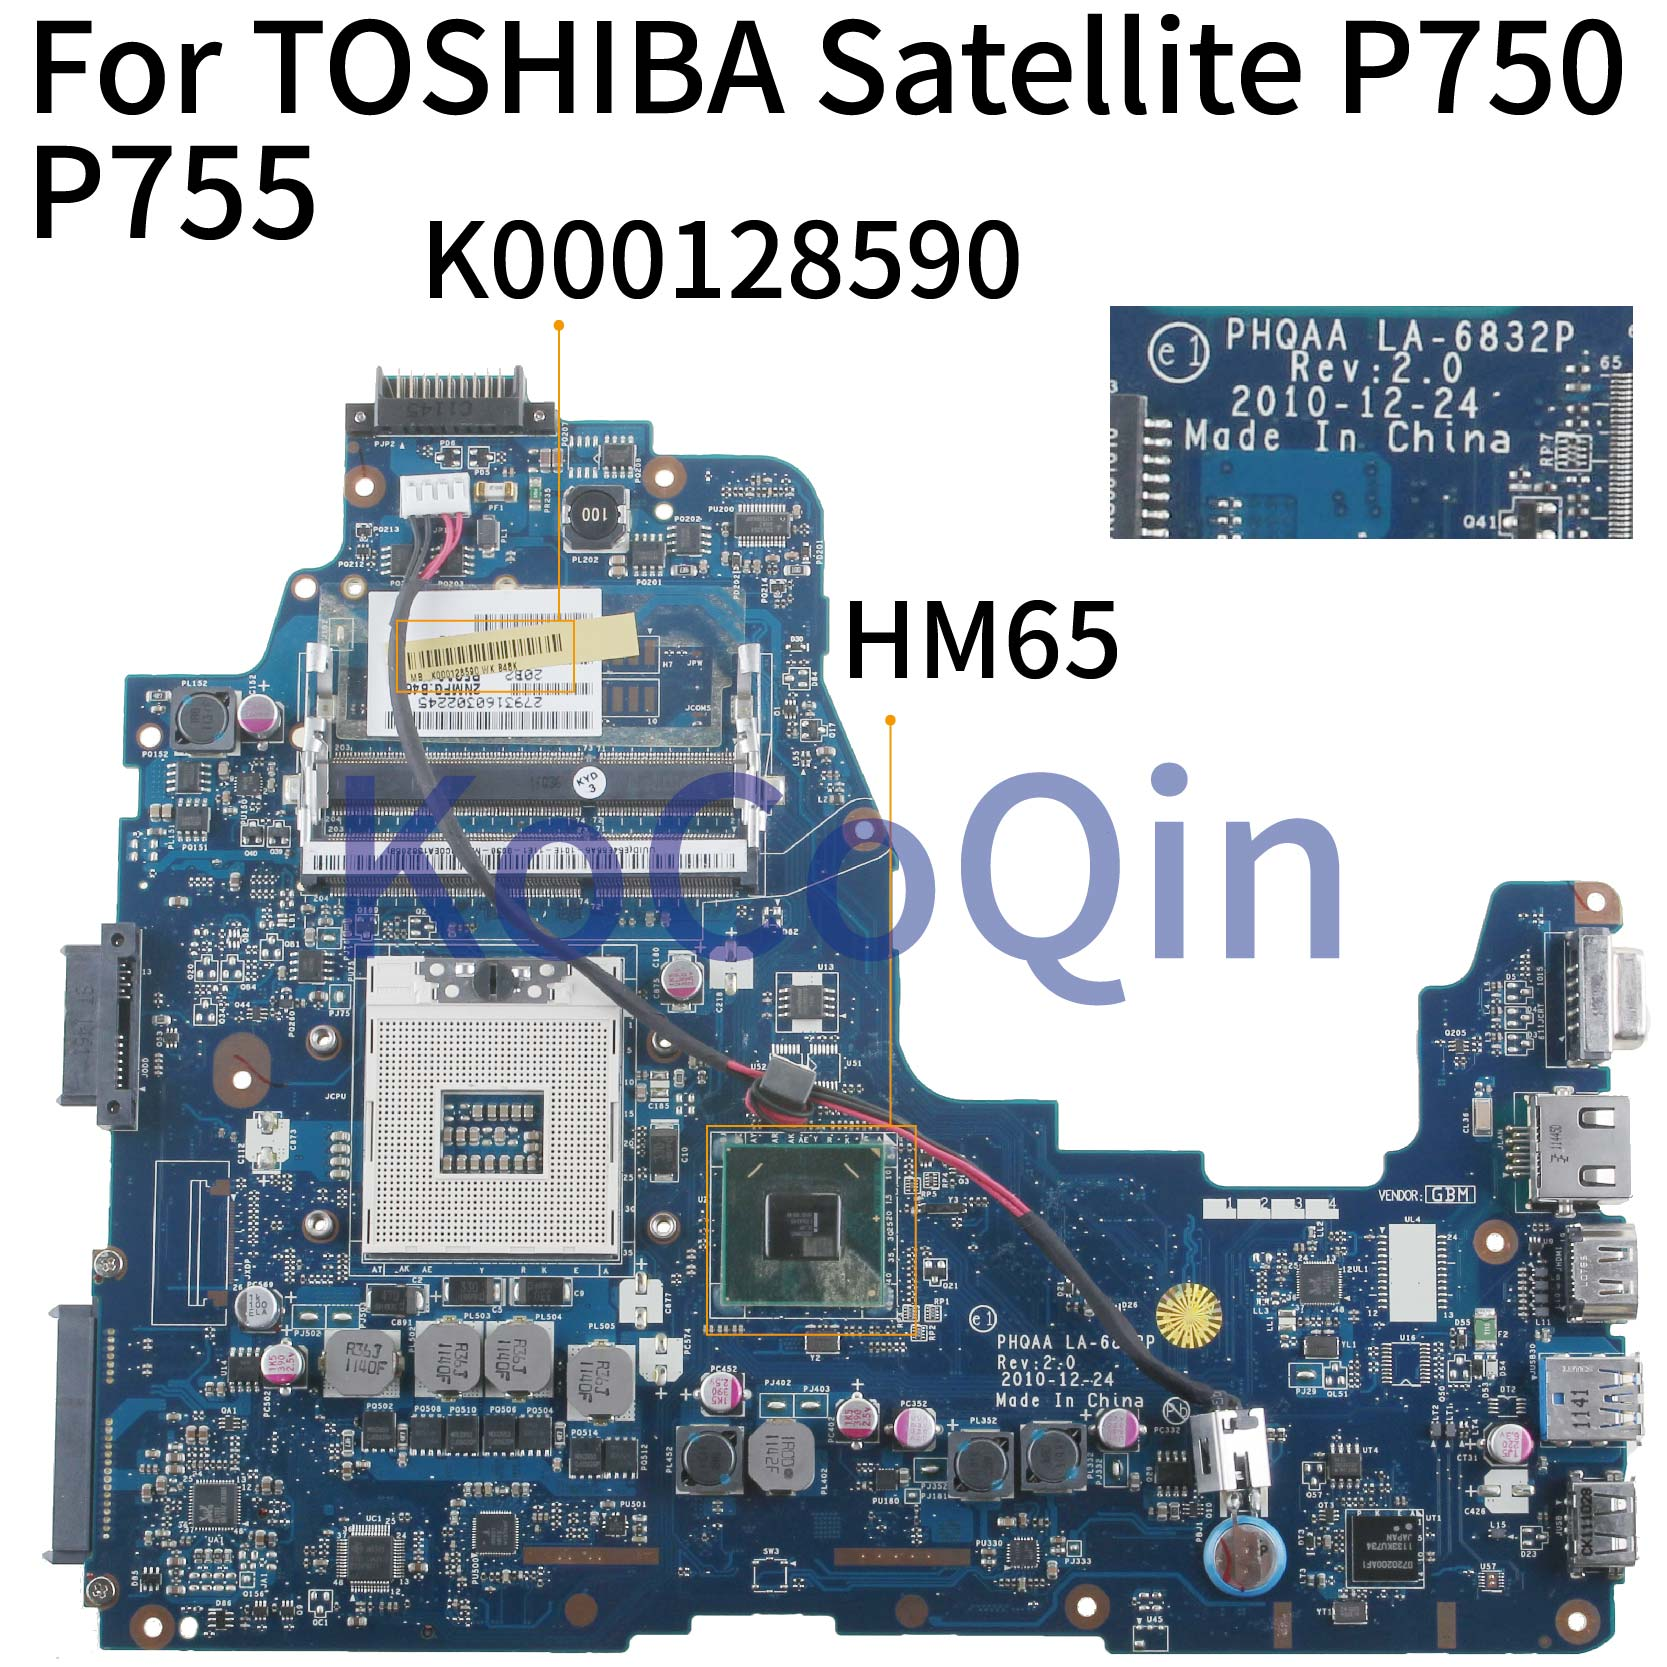 KoCoQin Laptop motherboard For TOSHIBA Satellite P750 P755 Mainboard K000128590 PHQAA LA-6832P HM65